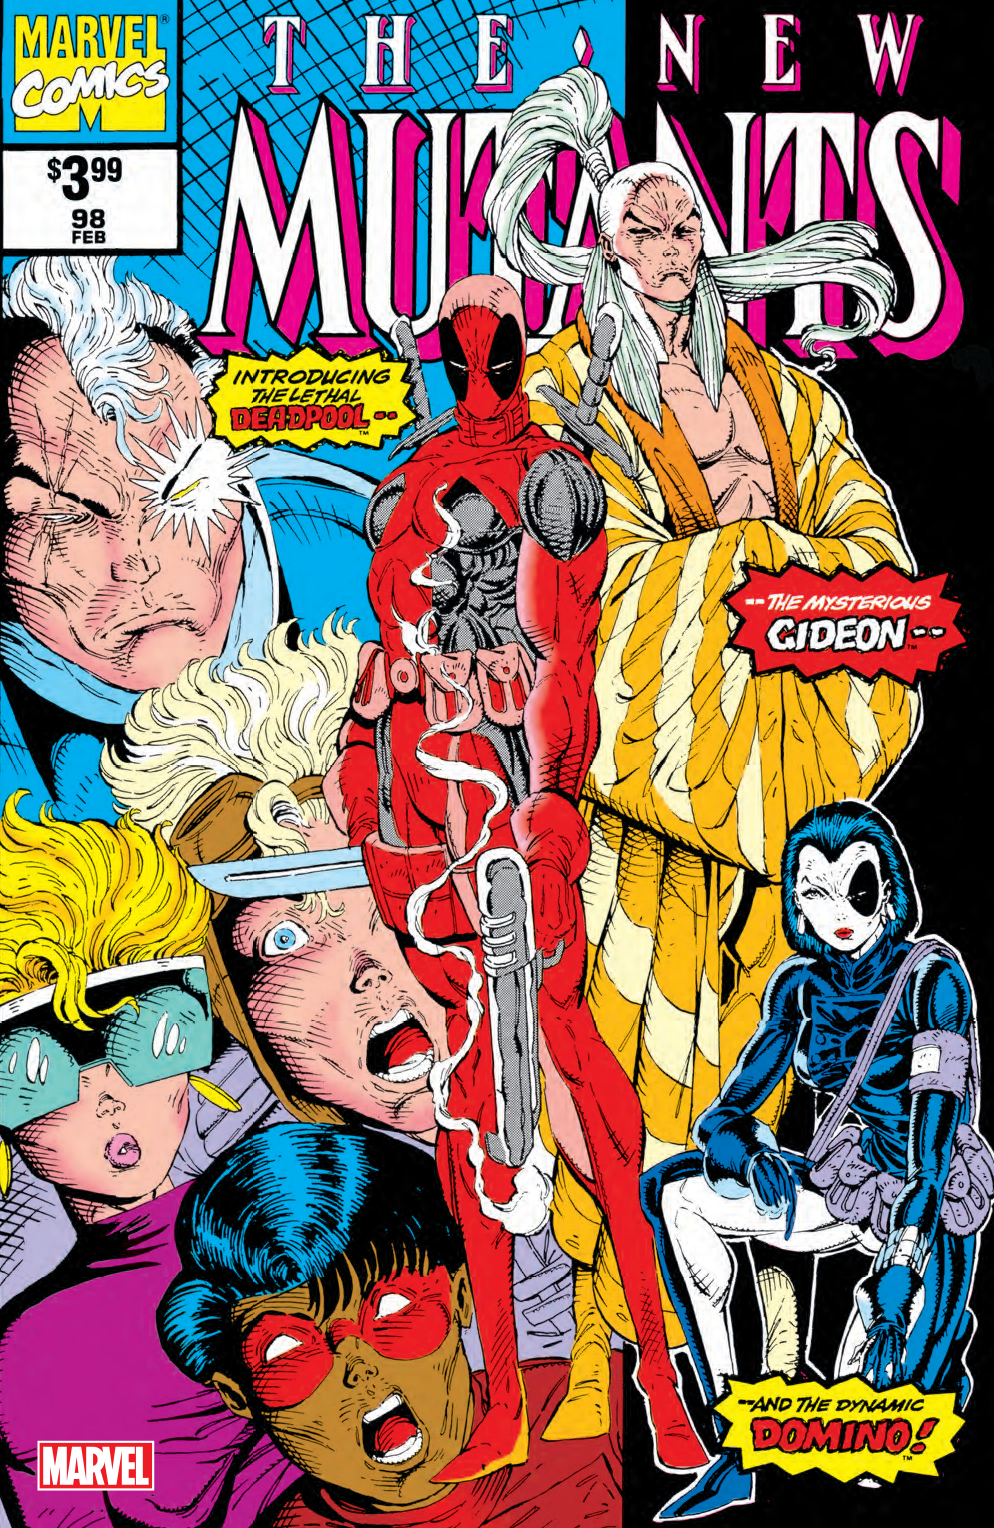 NEW MUTANTS #98 FACSIMILE EDITION